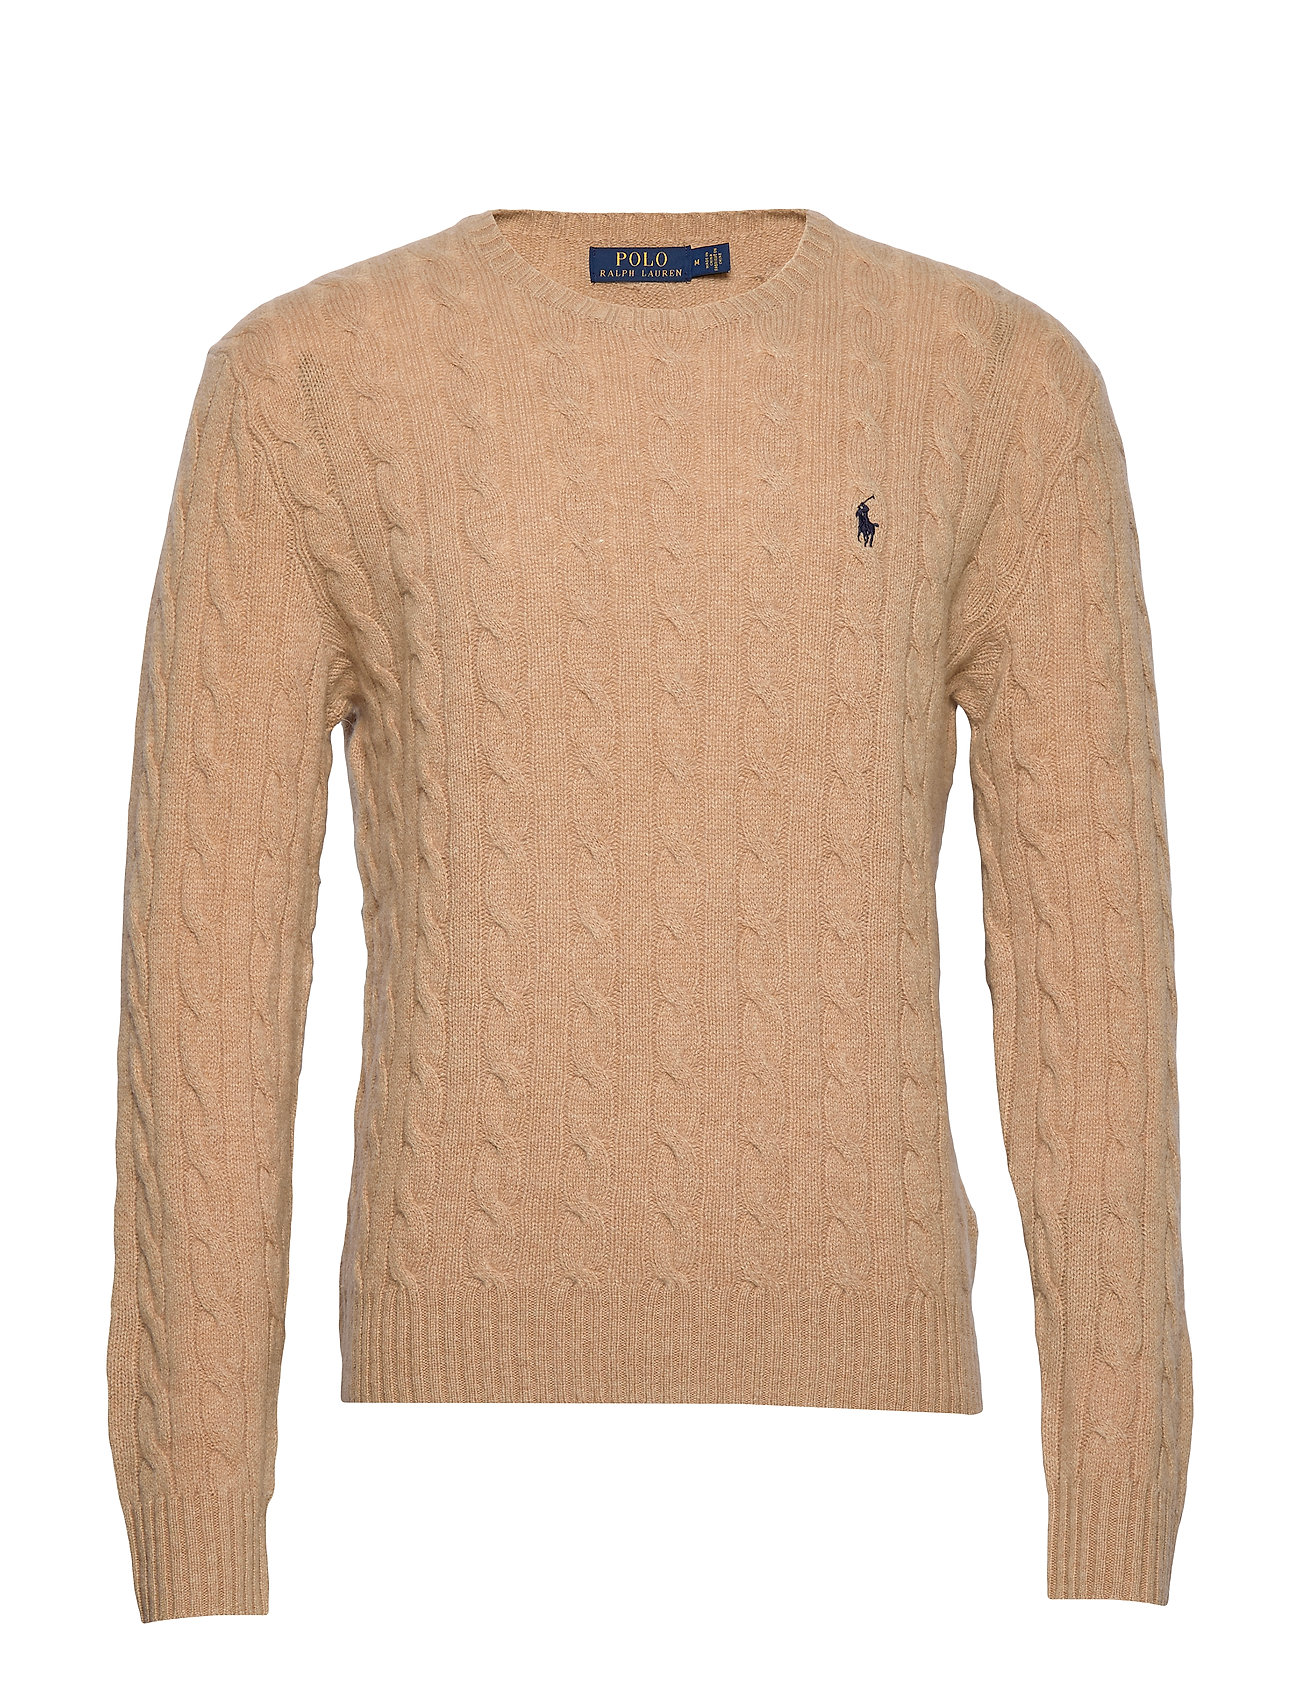 Polo Ralph Lauren LS CABLE CN-LONG SLEEVE-SWEATER - CAMEL MELANGE